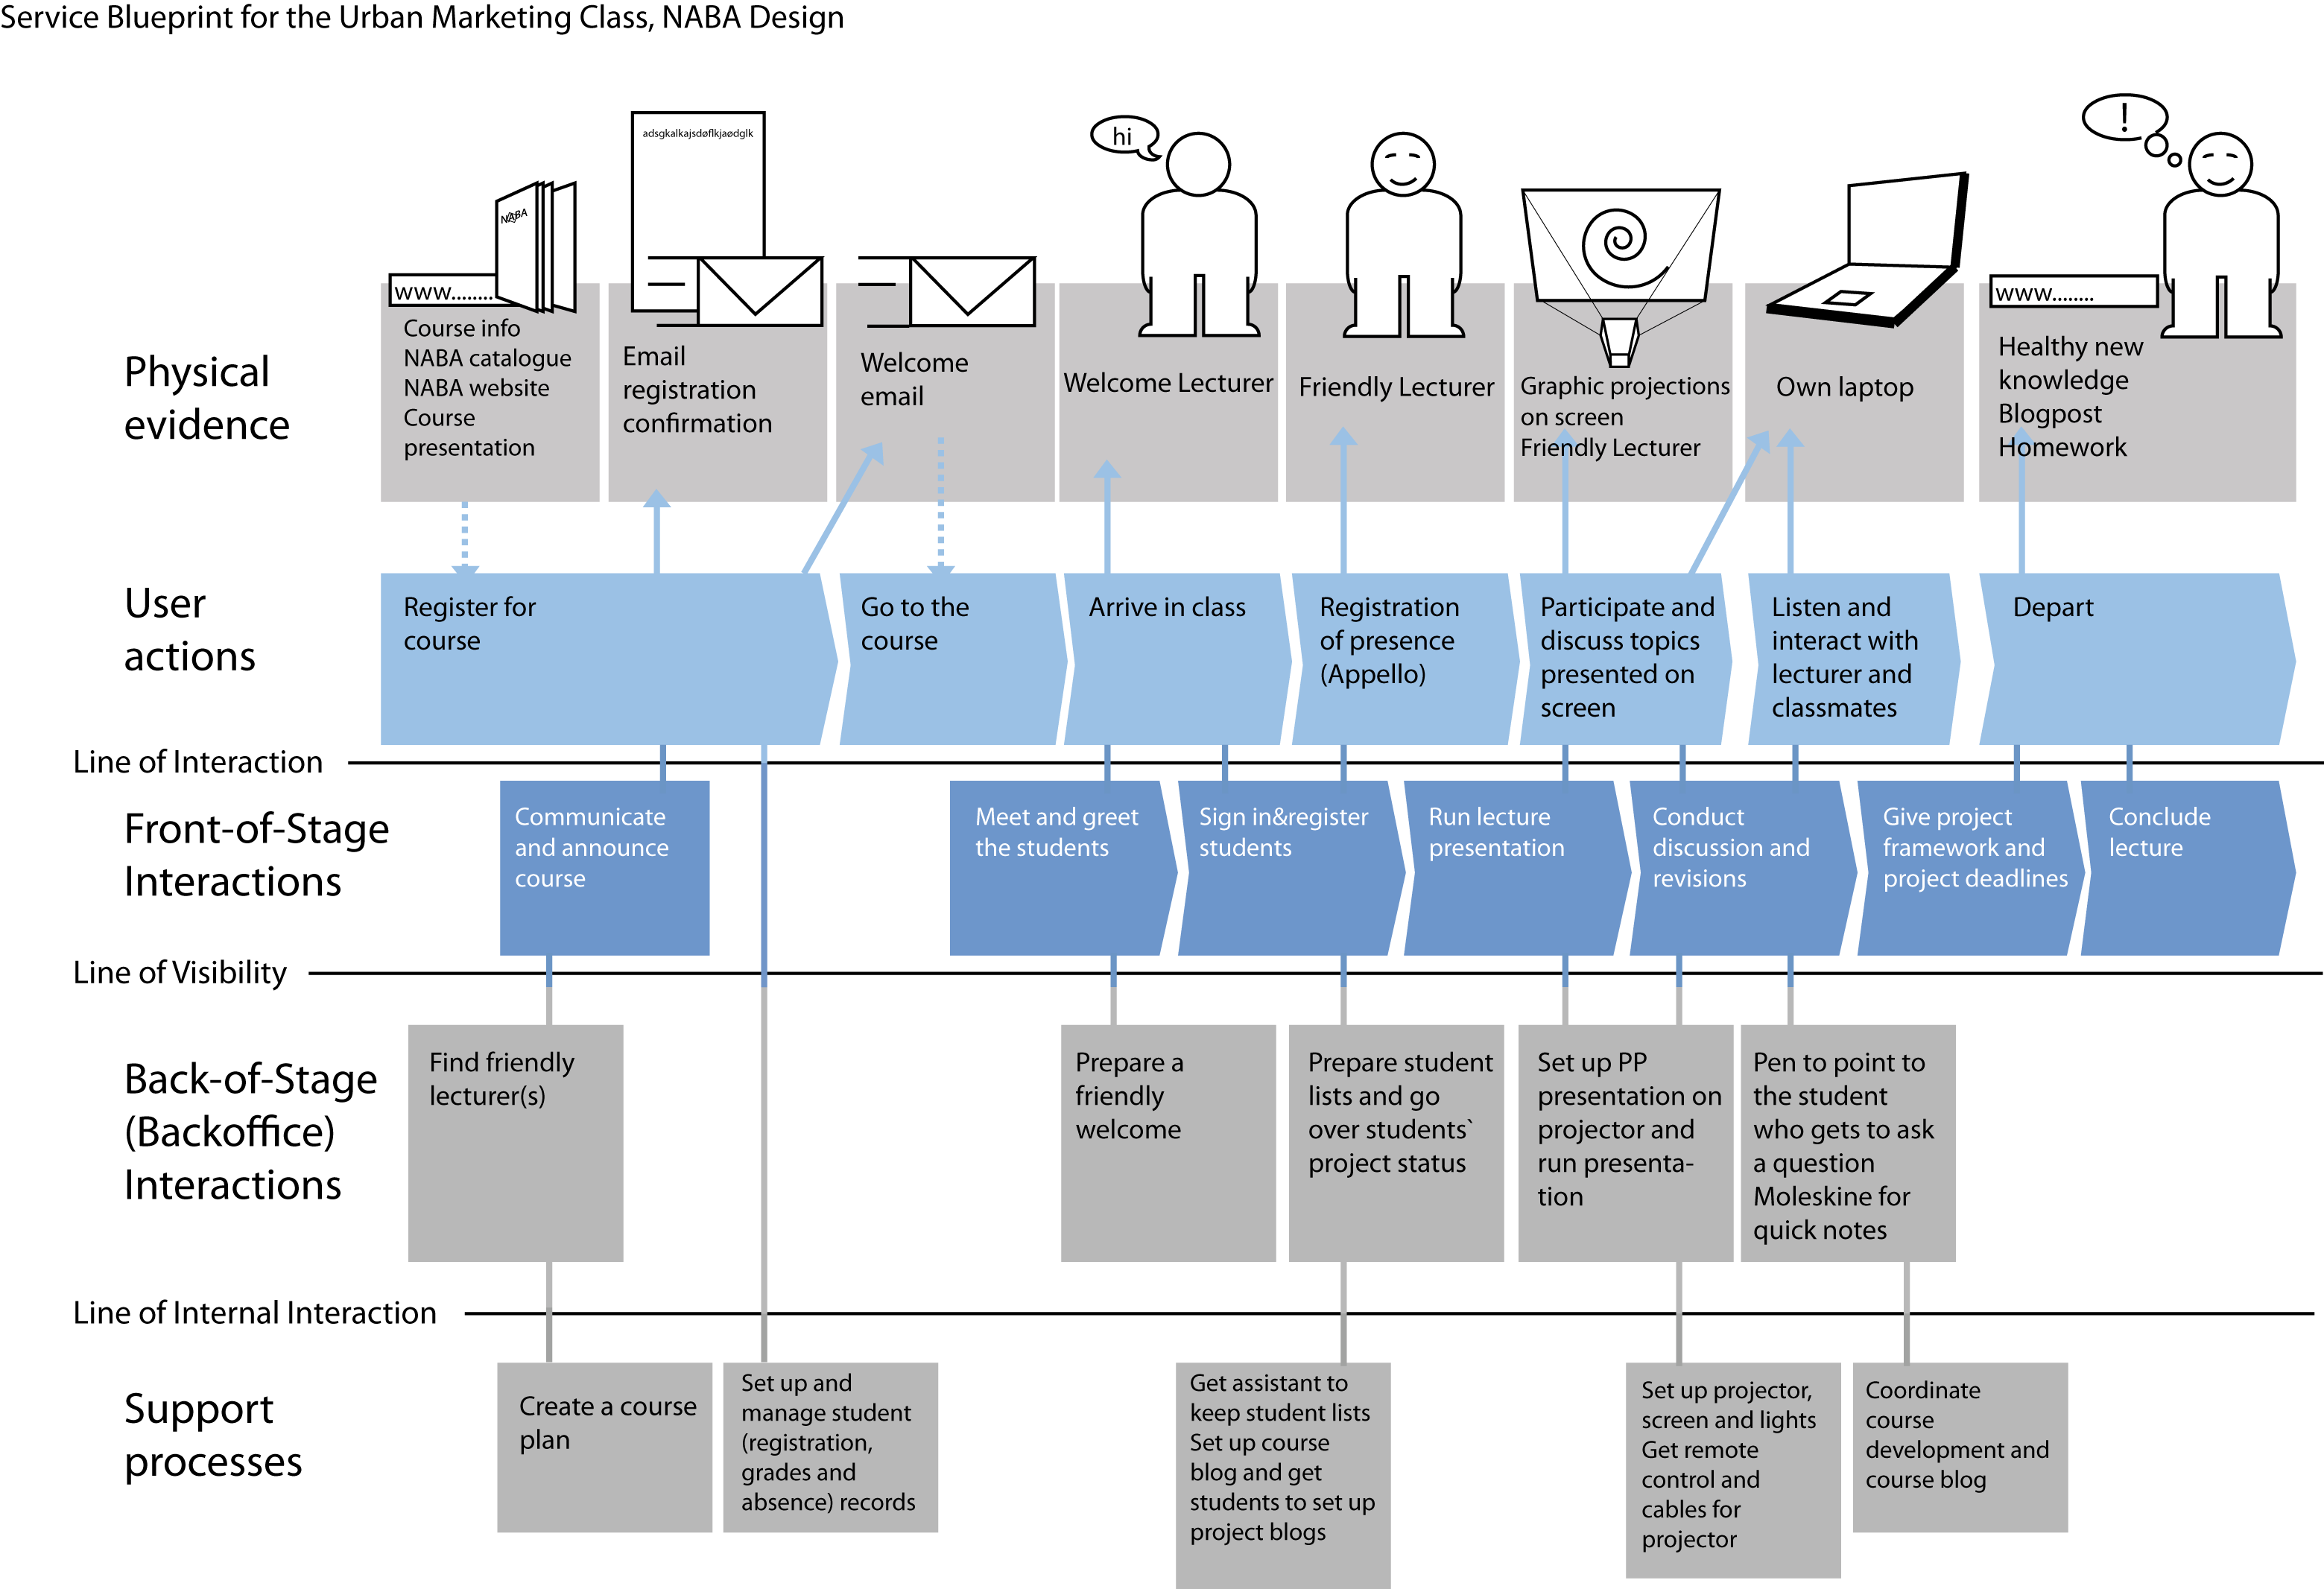 Service blueprint examples google search service blueprint service blueprint examples google search malvernweather Images